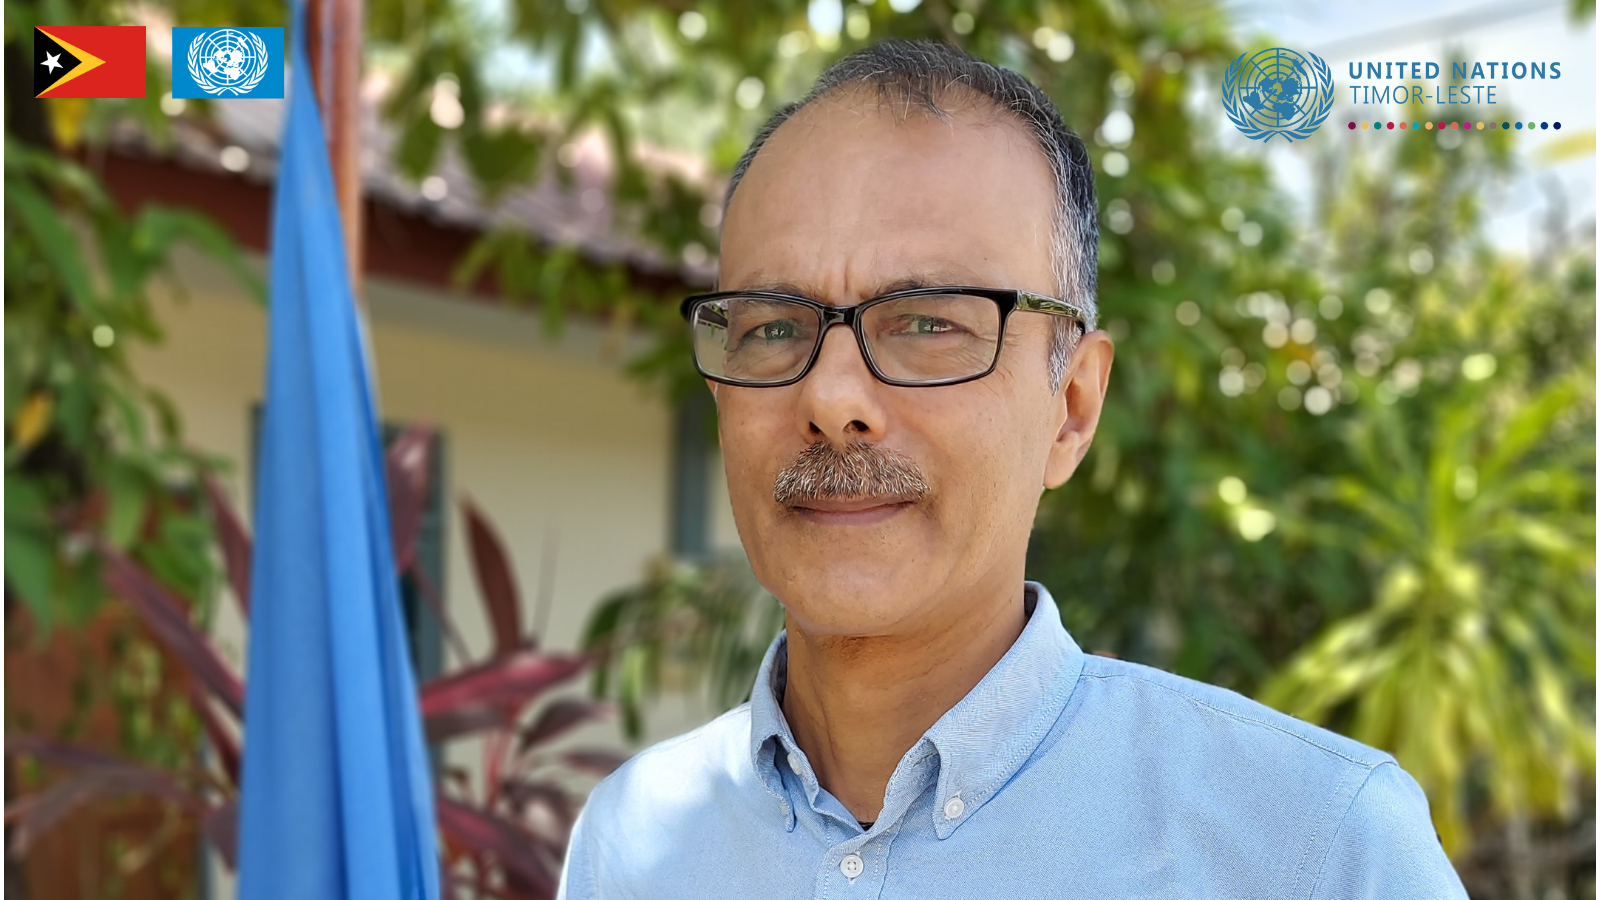 'Timor-Leste has taken remarkable strides in positioning itself as a staunch defender of human rights.' Roy Trivedy